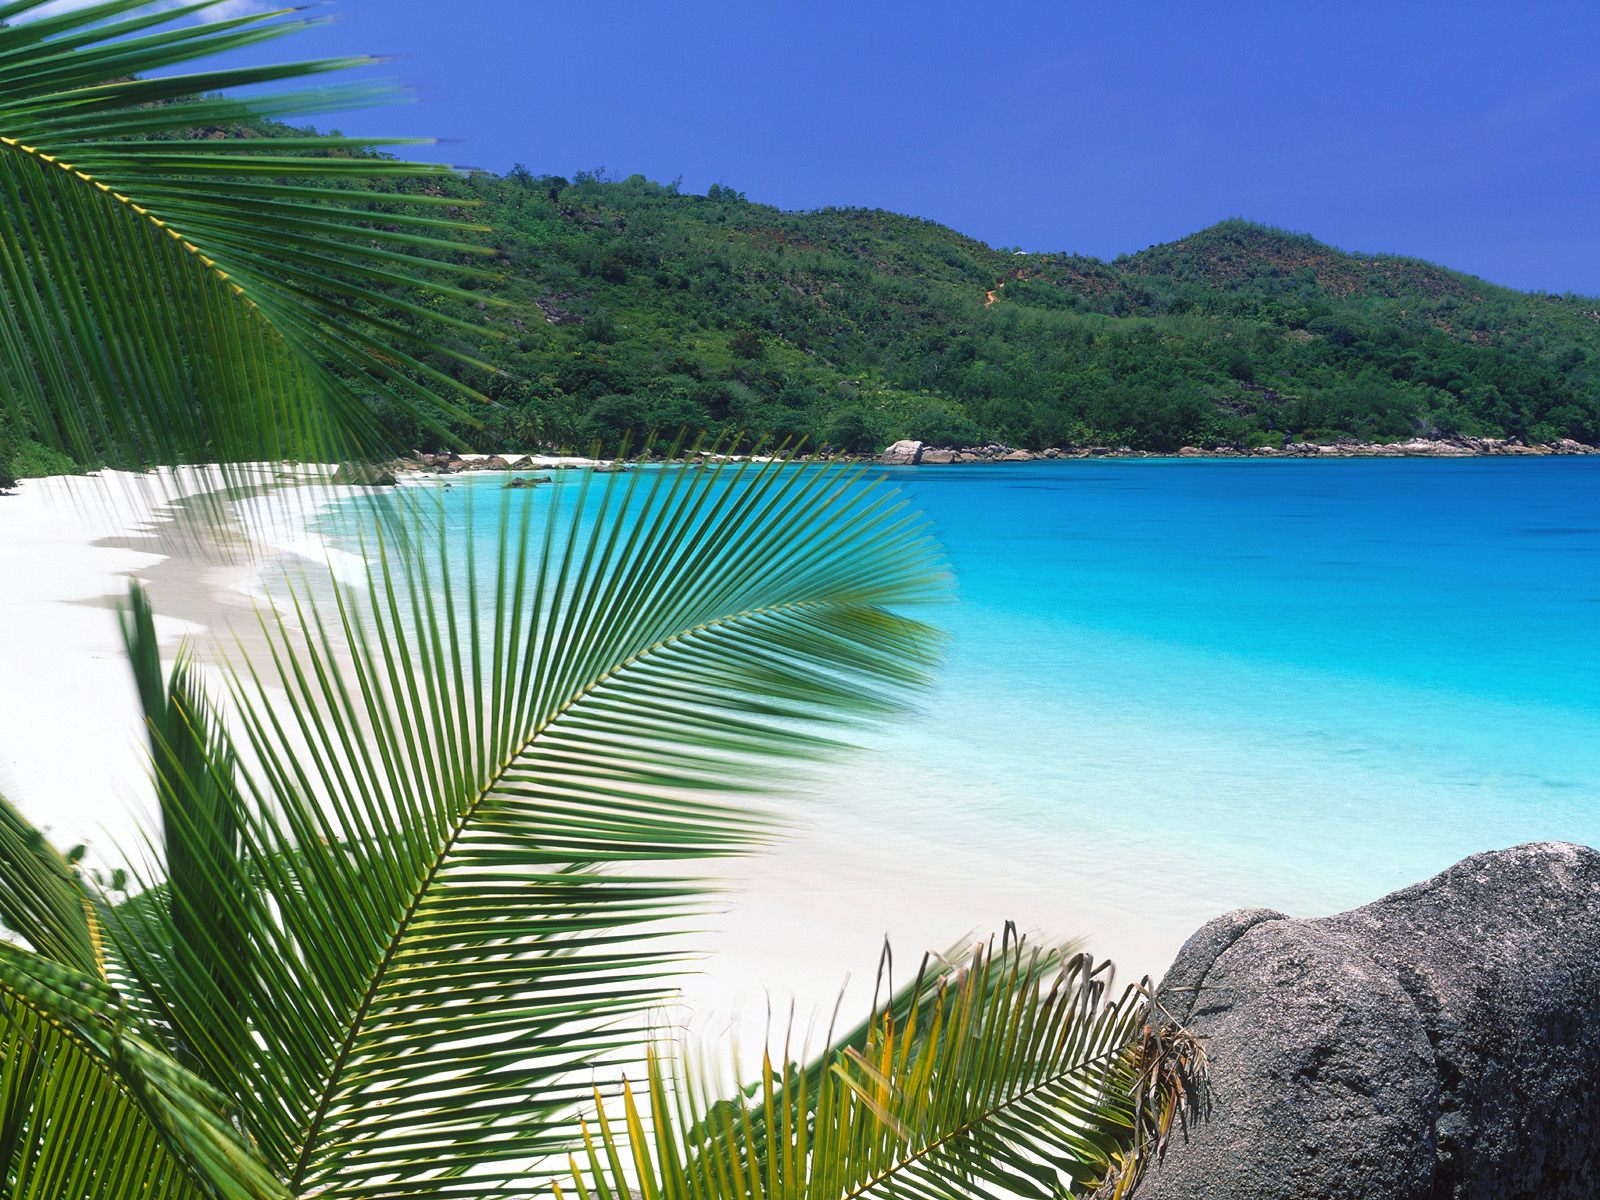 Tropical Beach Wallpaper Widescreen 1 1600x1200